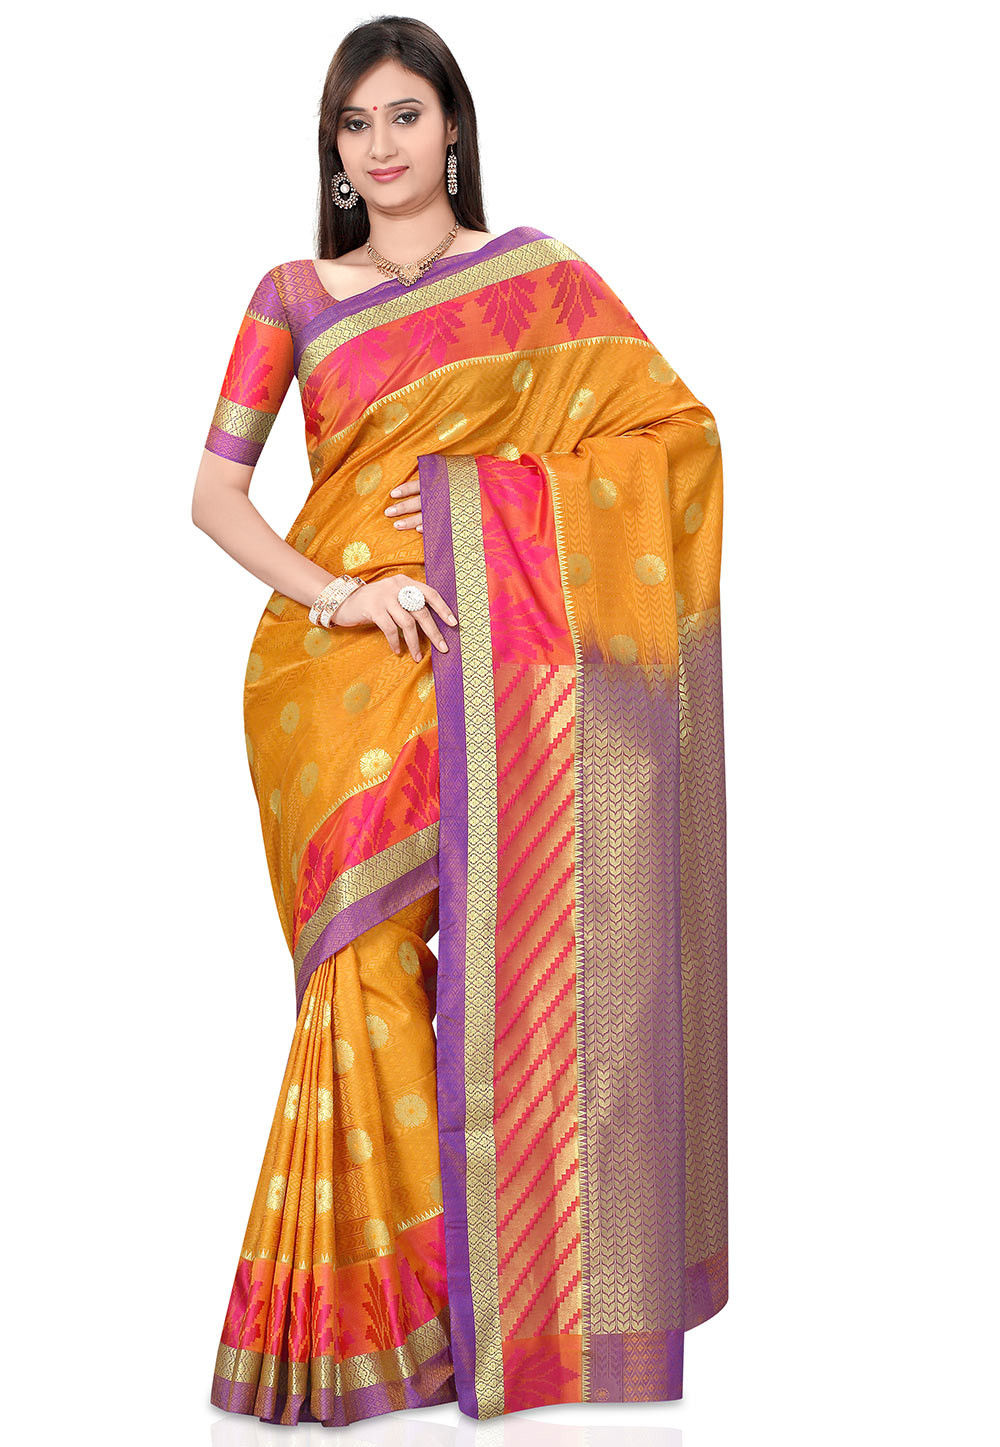 Woven Kanchipuram Saree in Mustard